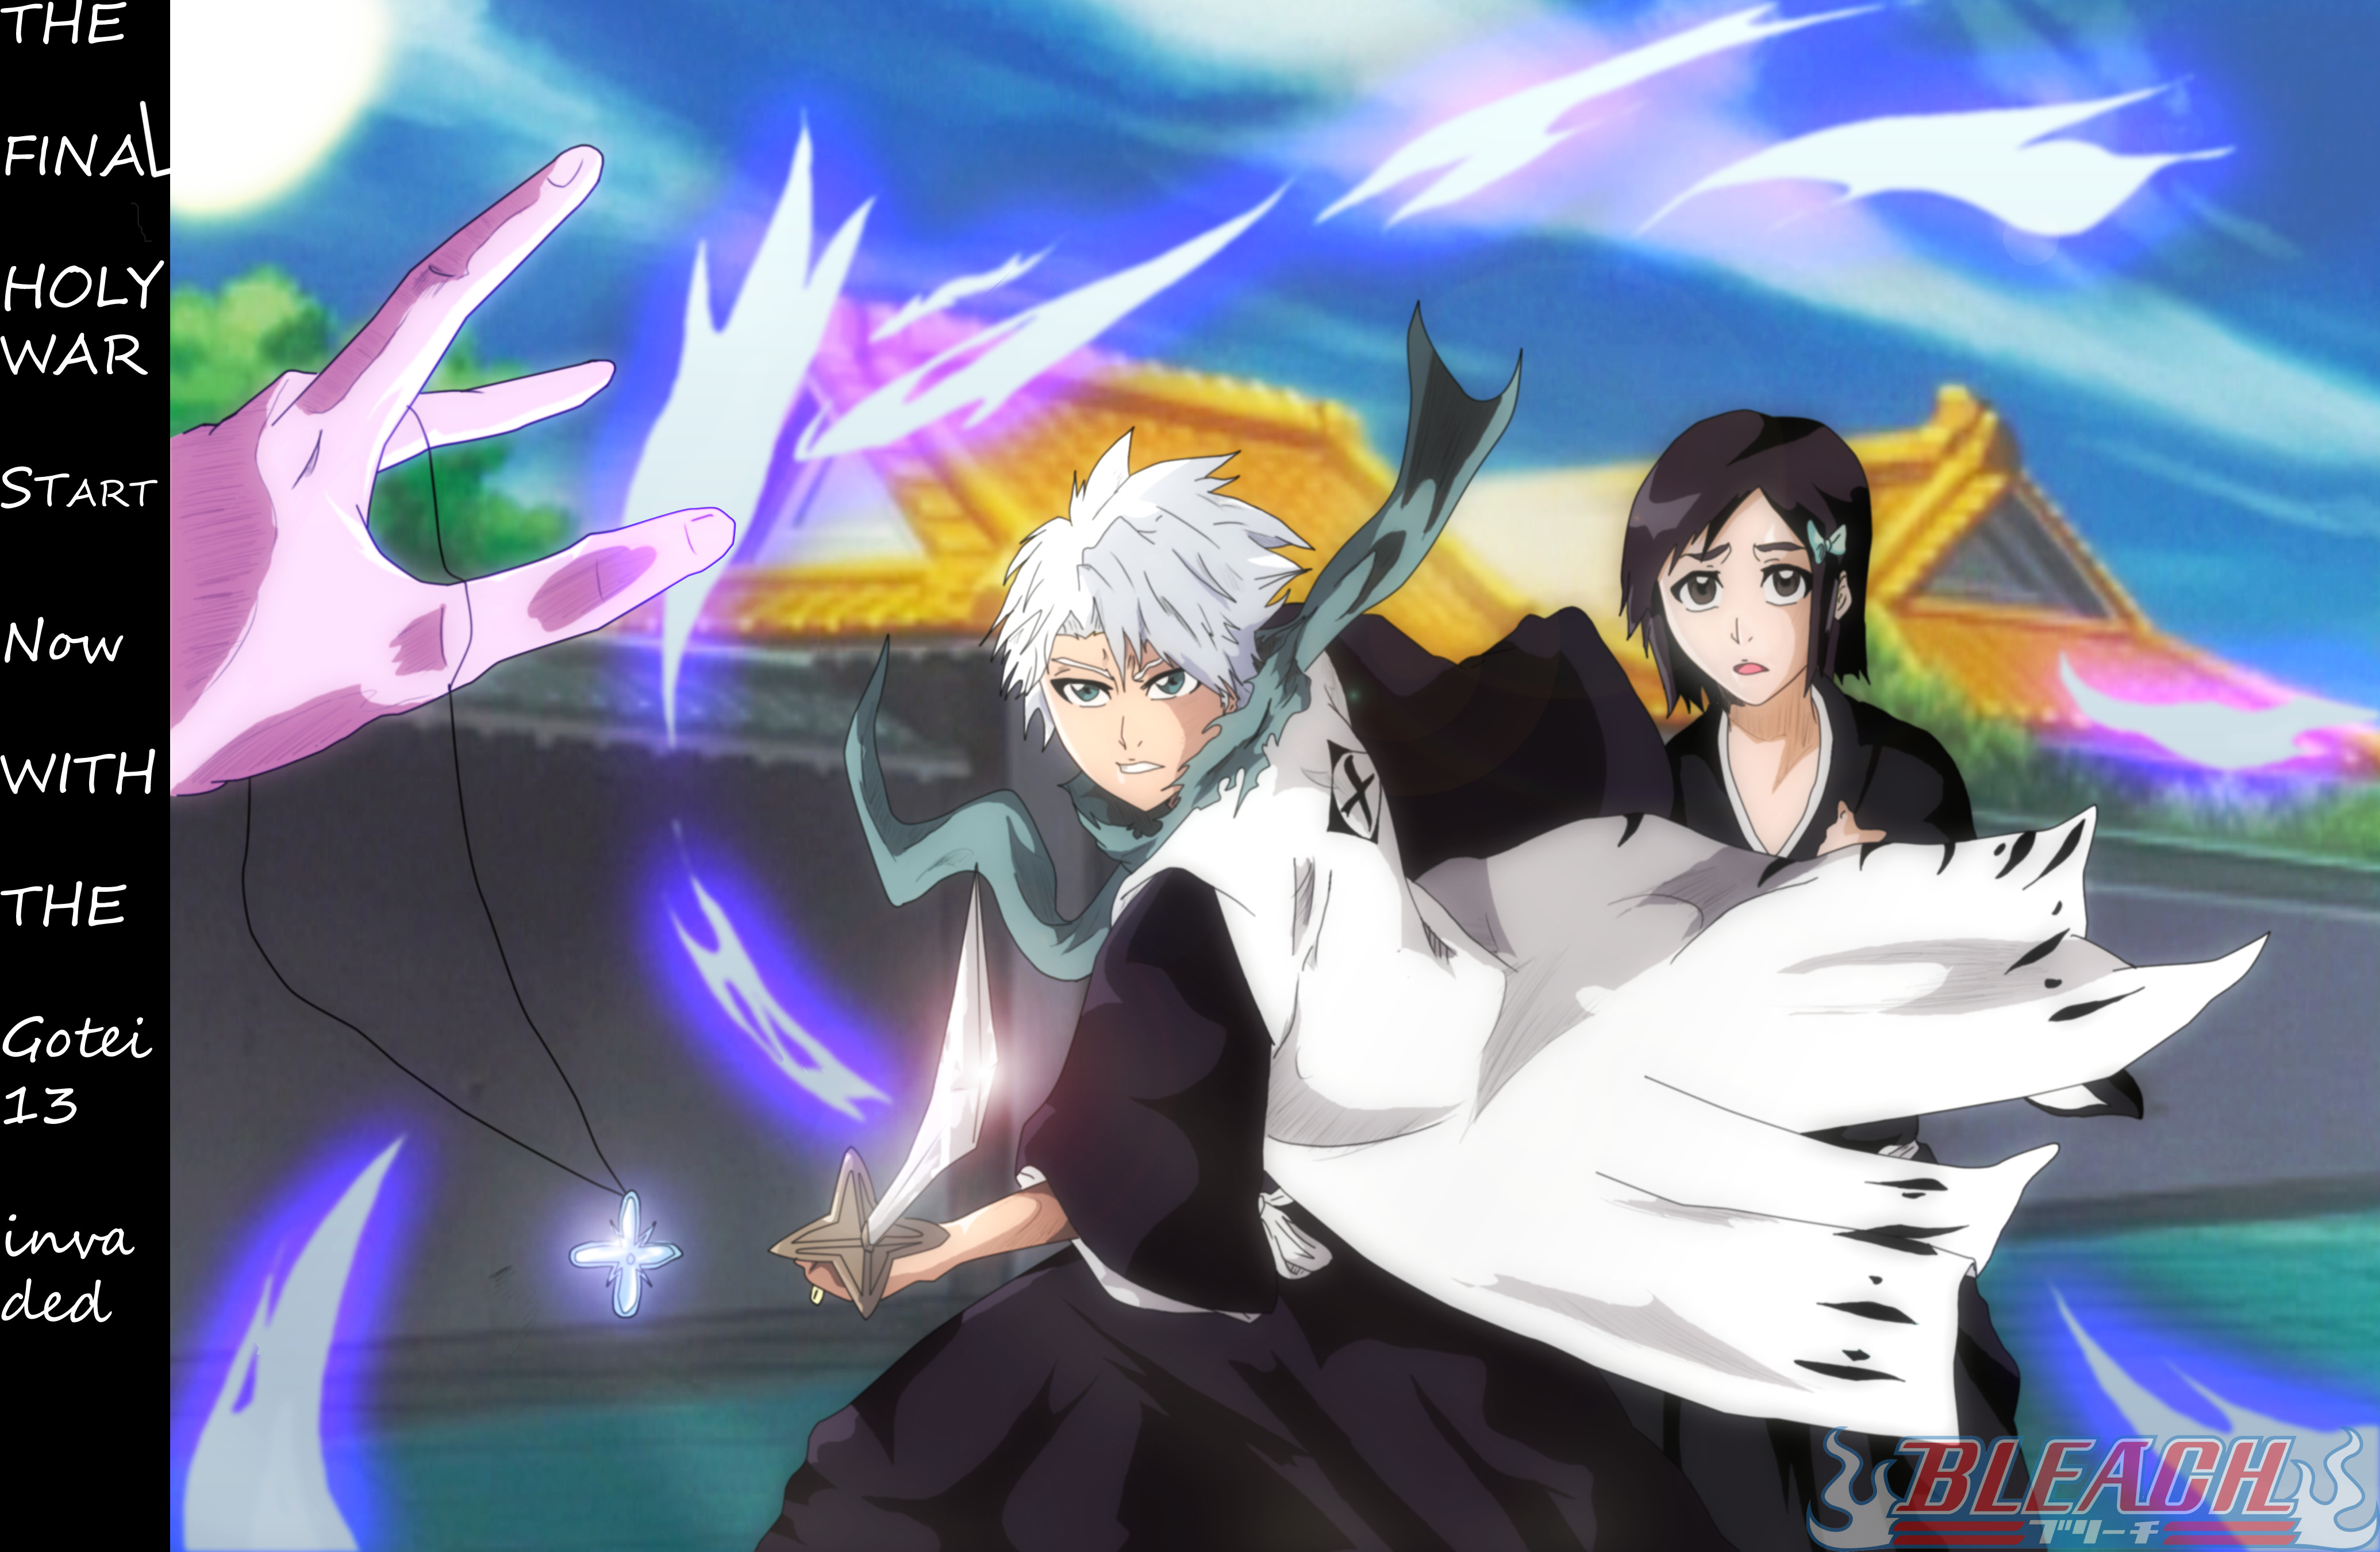 Bleach Toshiro Momo Group New Look By Greengiant2012